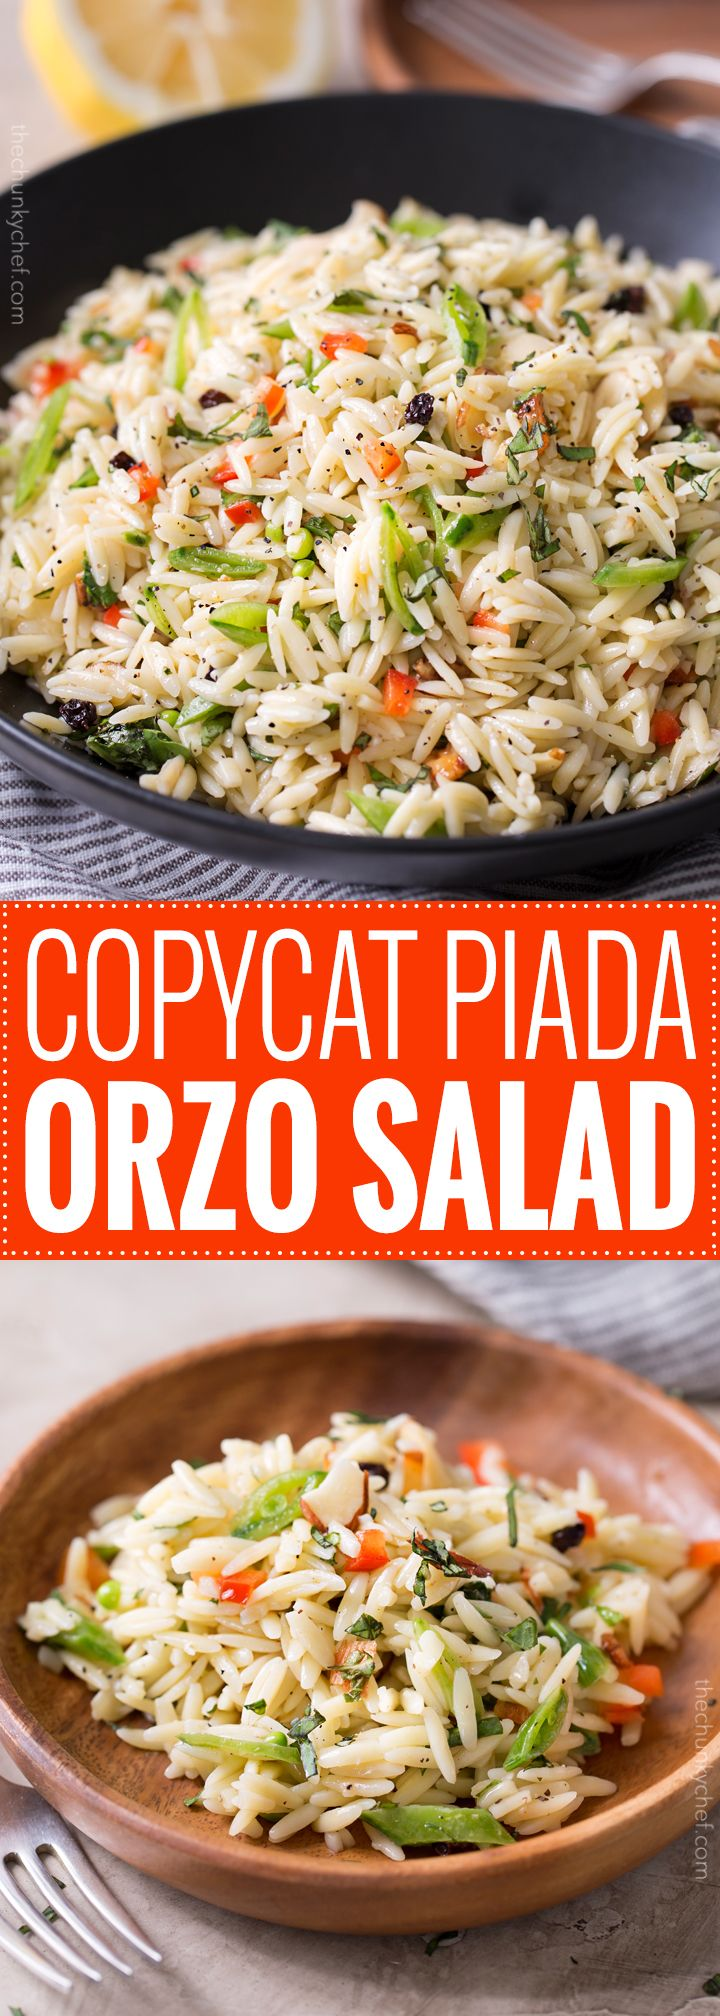 Copycat Piada Orzo Salad | This orzo salad is a copycat of the one sold at Piada Italian Street Food... it's crunchy, a little sweet, a little savory, and always a hit at parties! | http://thechunkychef.com (Paleo Pasta Salad)